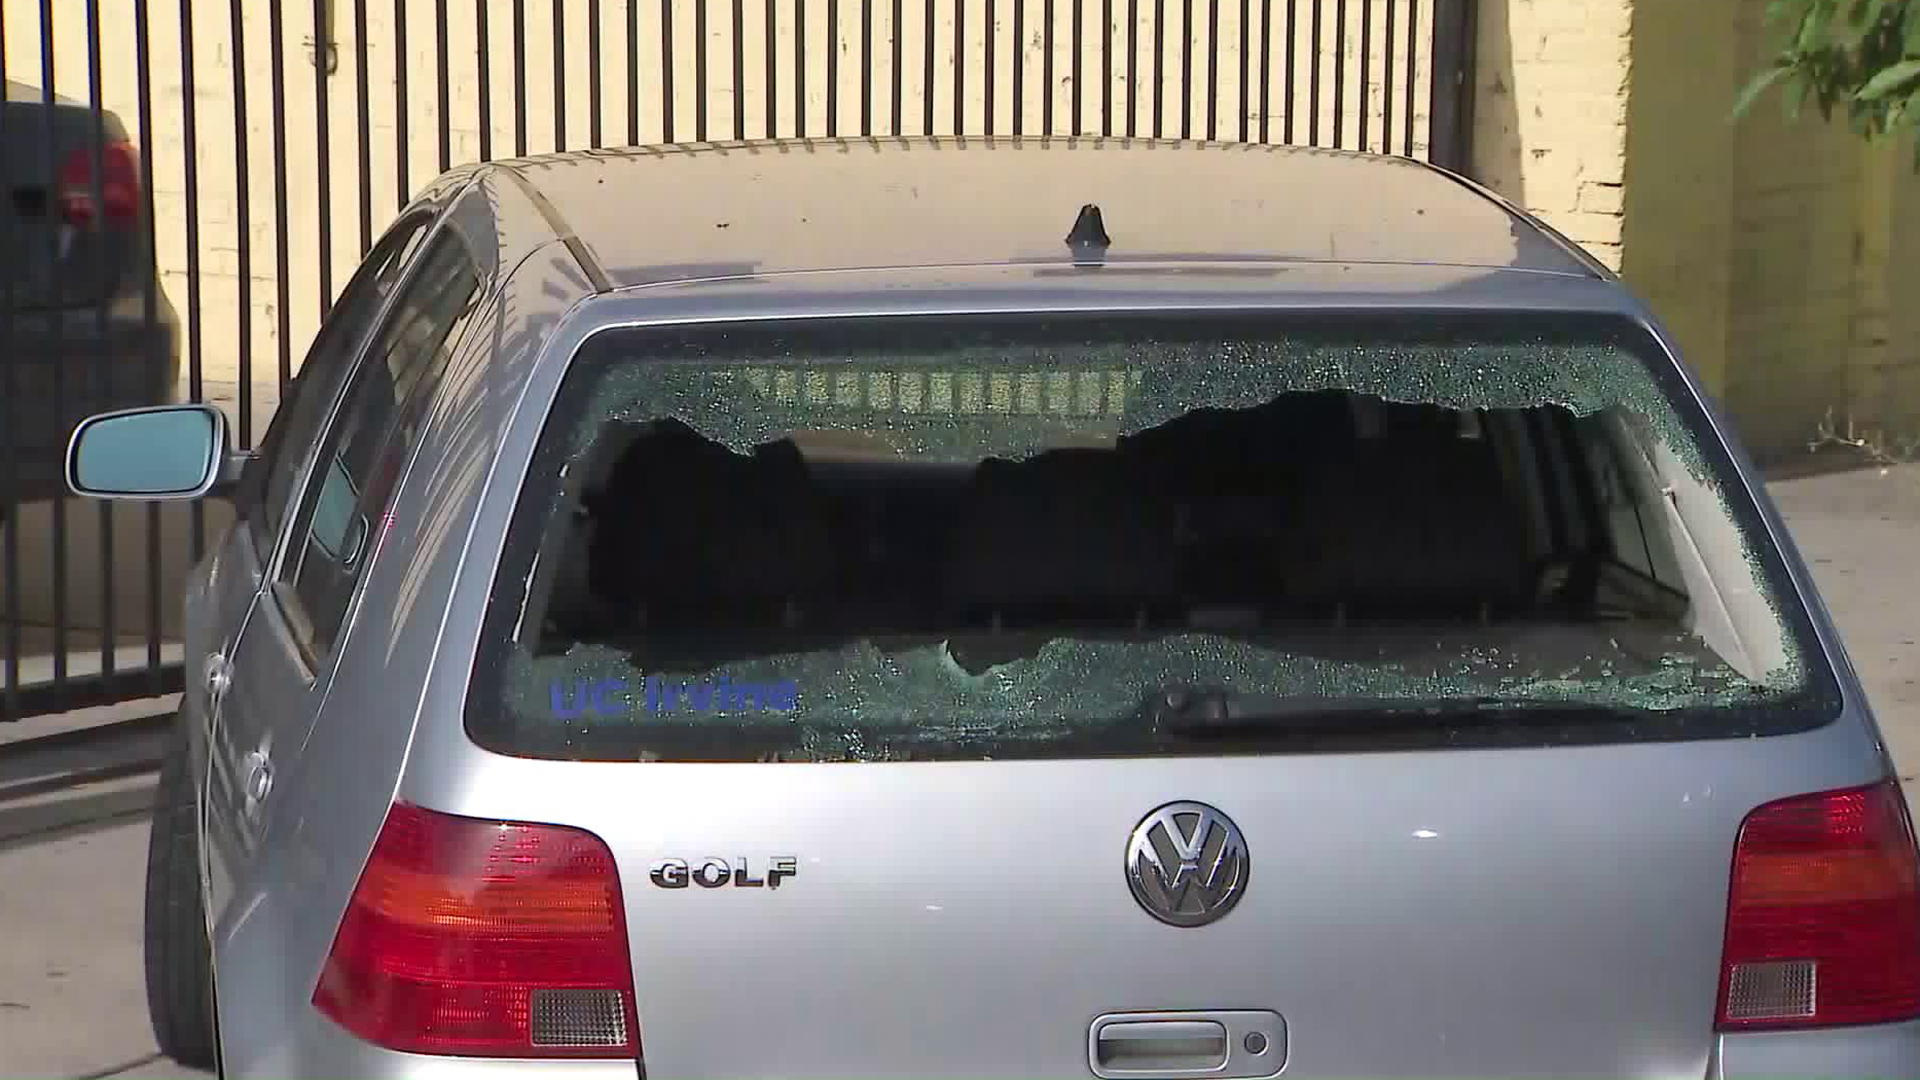 The shattered back window of a vehicle the victims were in prior to the shooting is seen on Aug. 15, 2019. (Credit: KTLA)